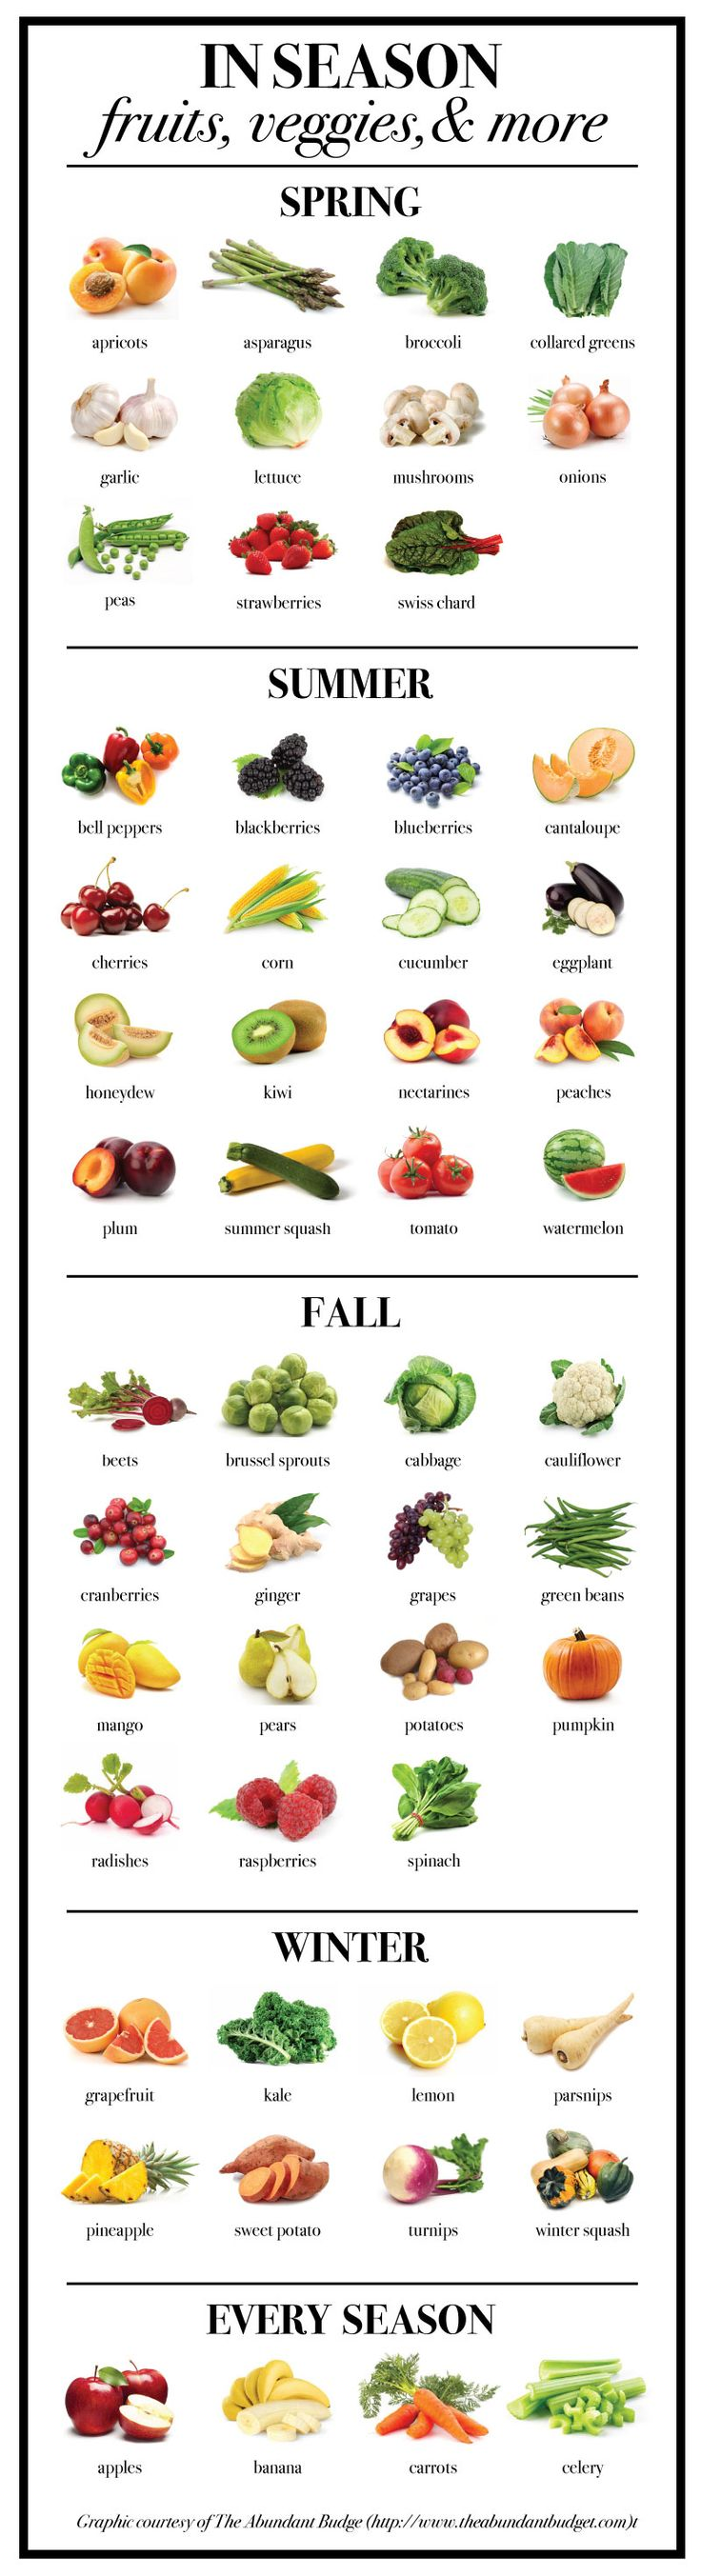 The in-season produce guide that you've always wanted, courtesy of The Abundant Budget! #groceryshopping #mealplanning #healthyliving #inseason #inseasonproduce #produce #eatclean